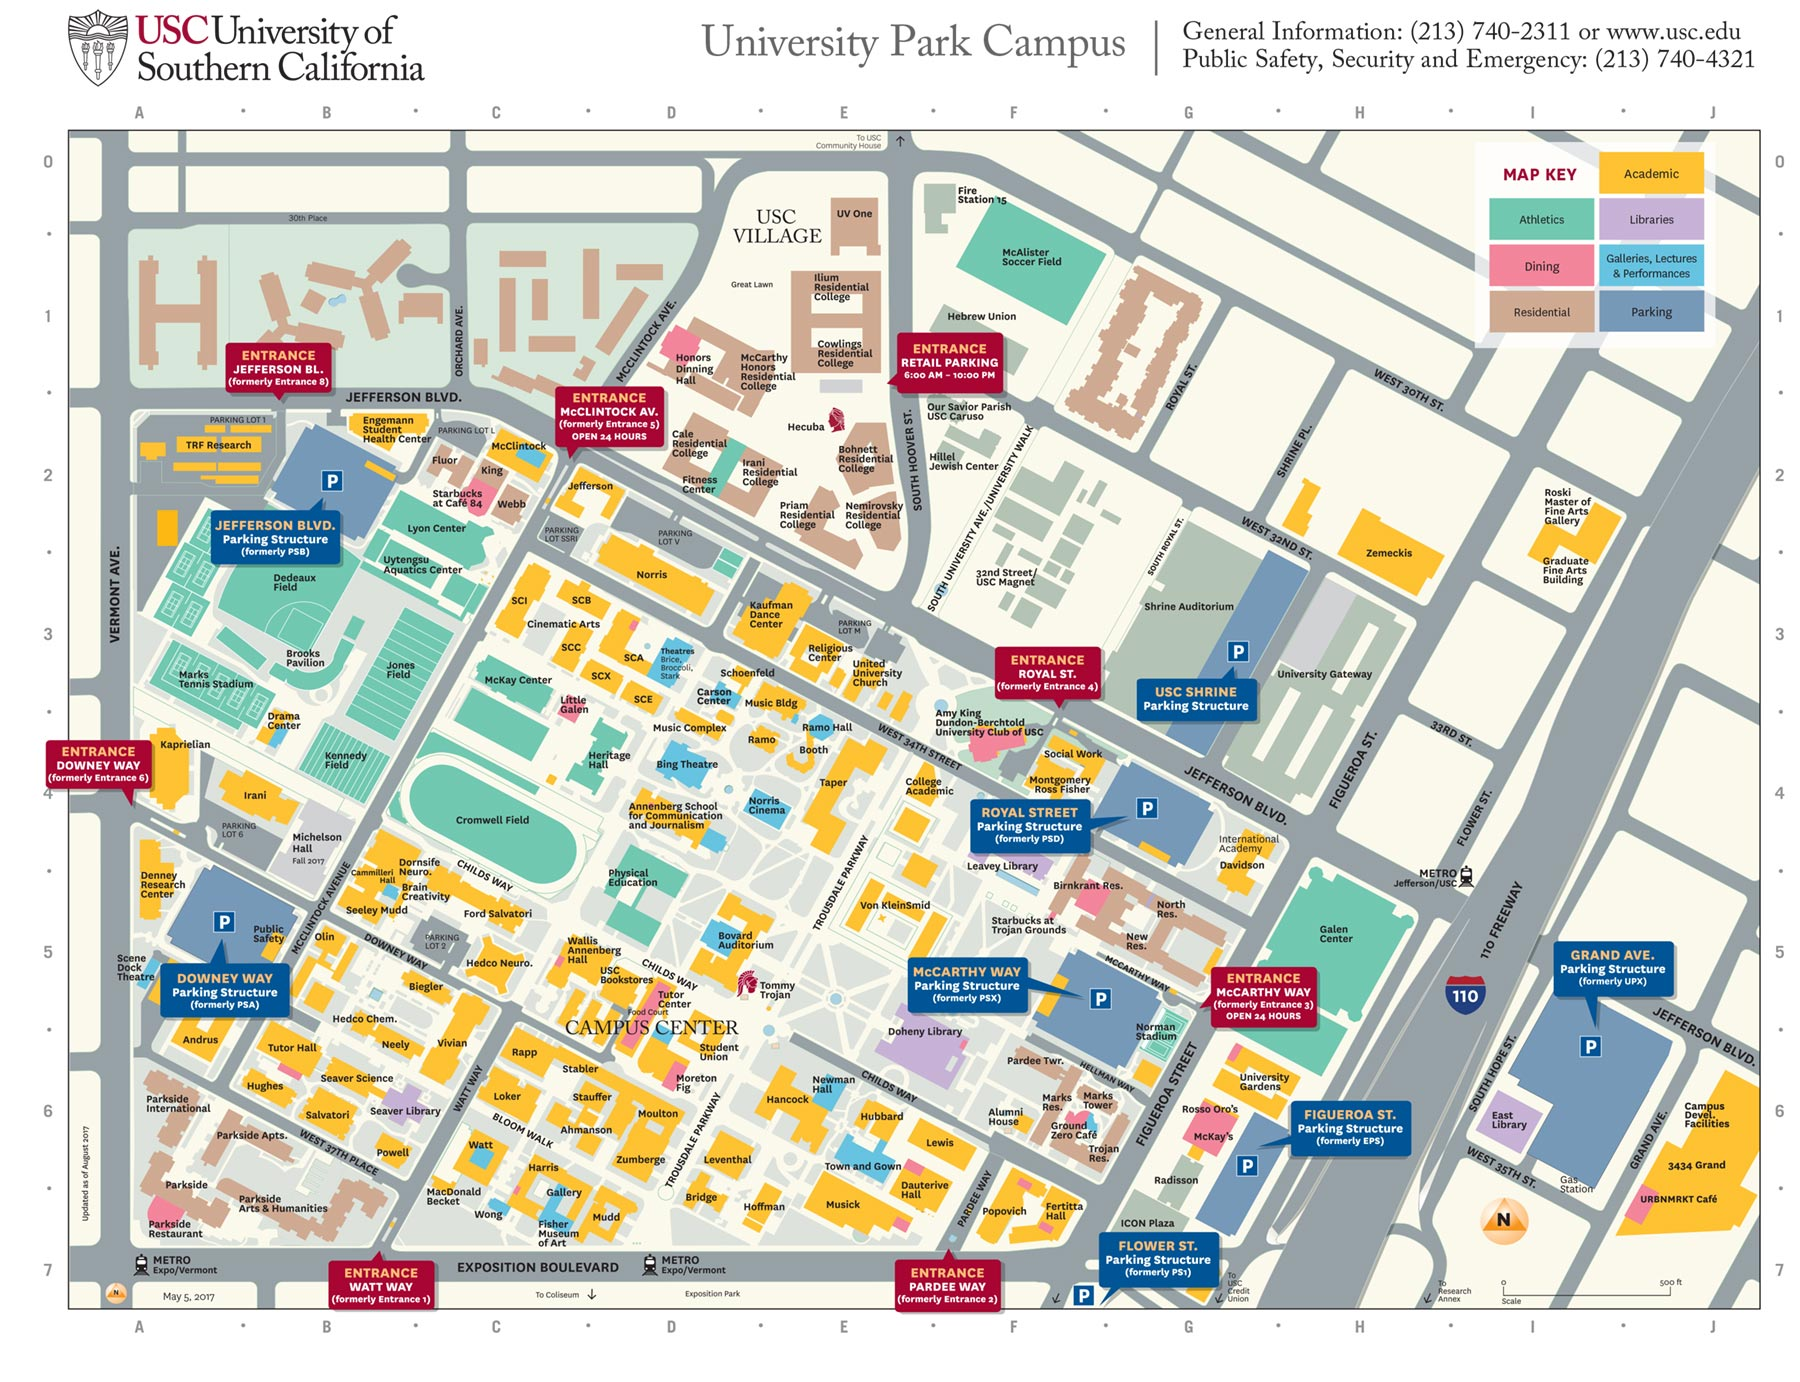 usc university park campus parking structures entrances get new  - university park campus map